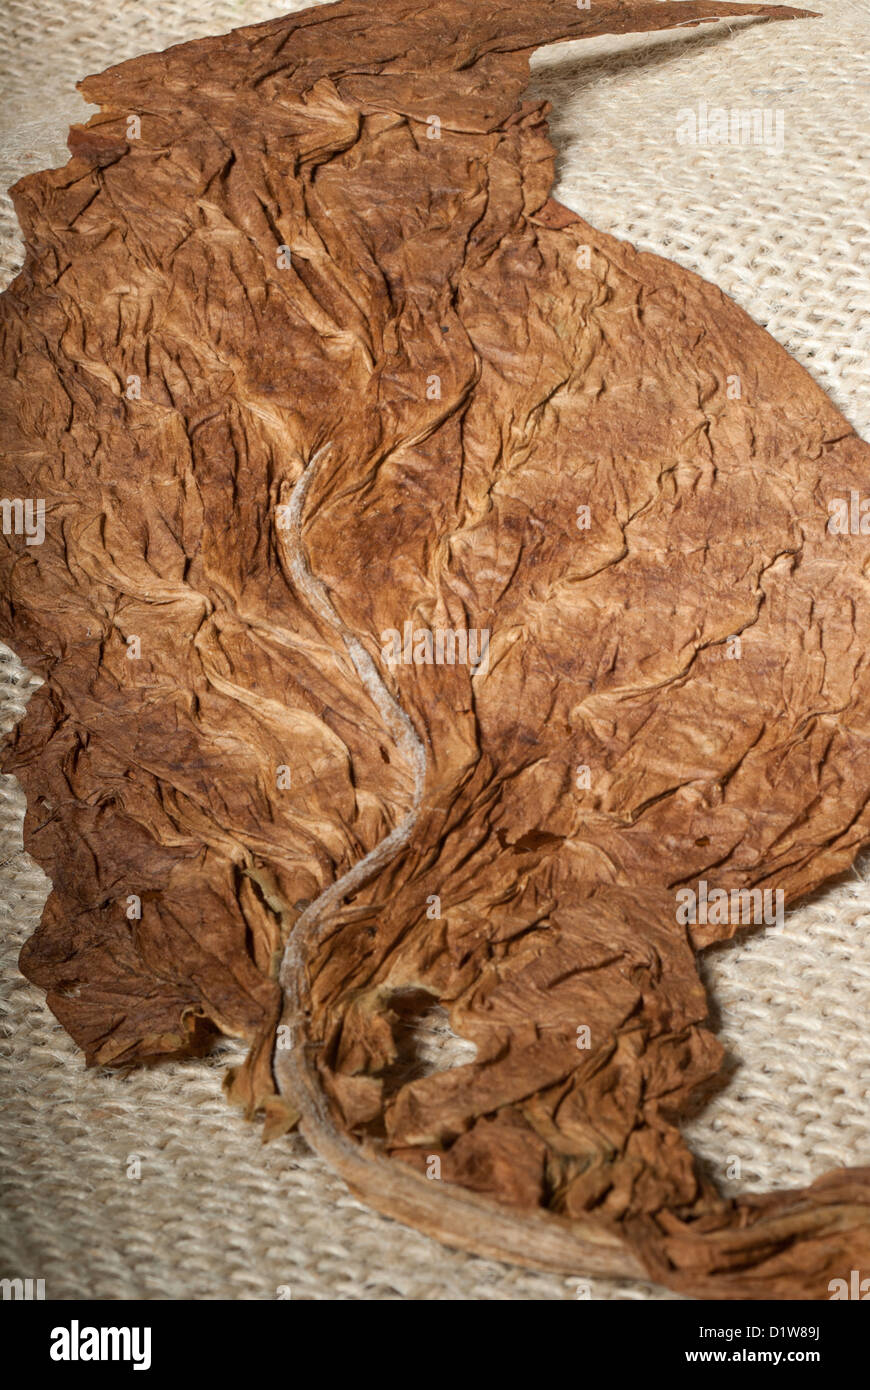 Process of drying a nicotine leaf on a cloth - Stock Image